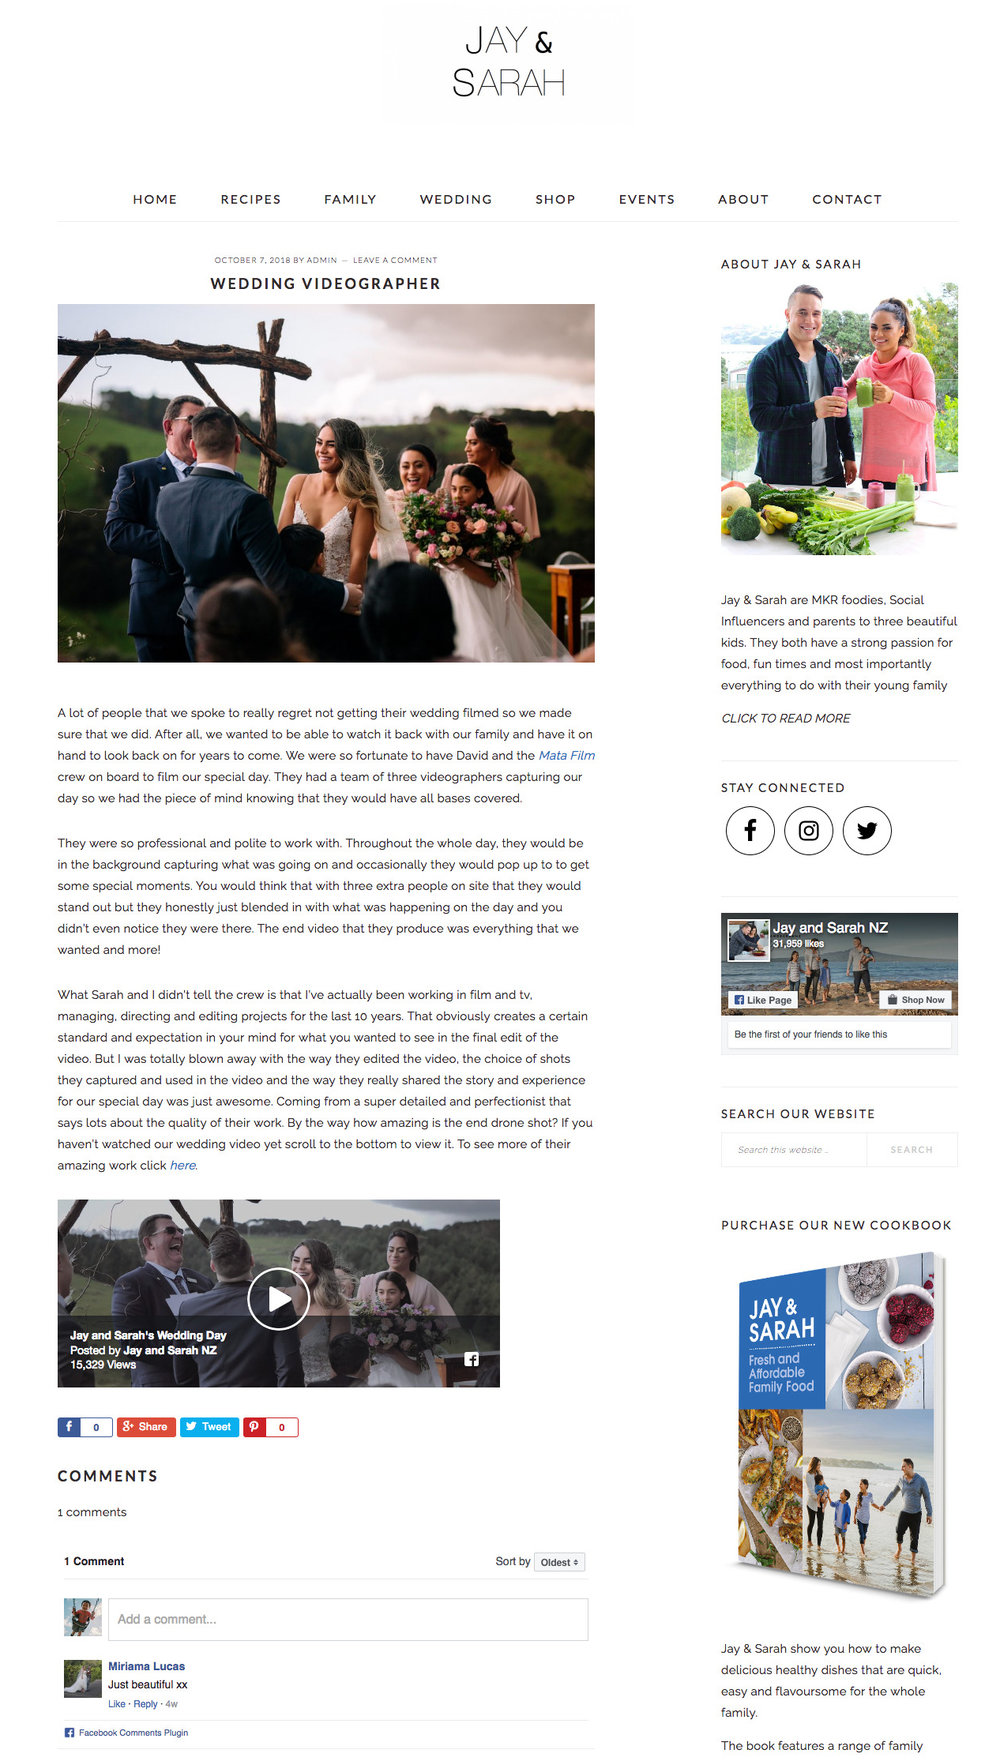 Read the full article here  http://www.jayandsarah.nz/wedding/videographer-mata-films/